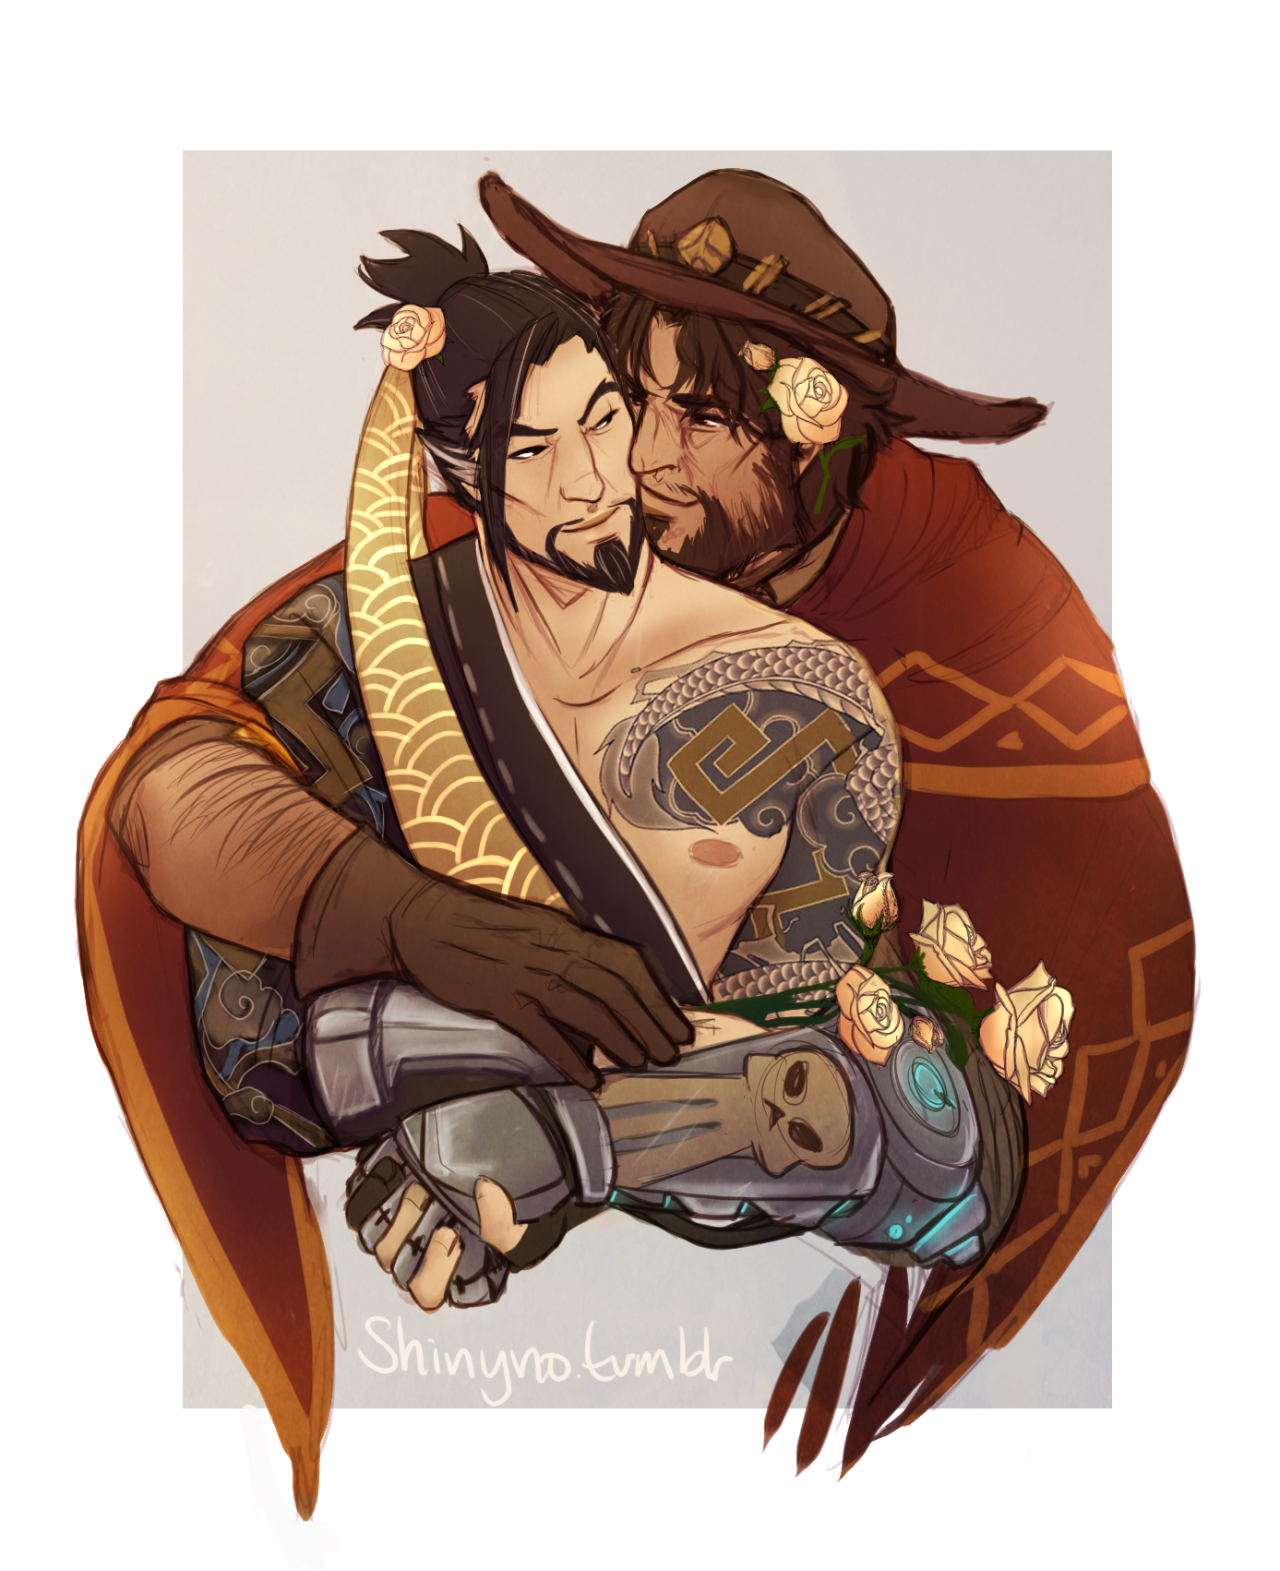 Mccree X Hanzo Rule - Year of Clean Water